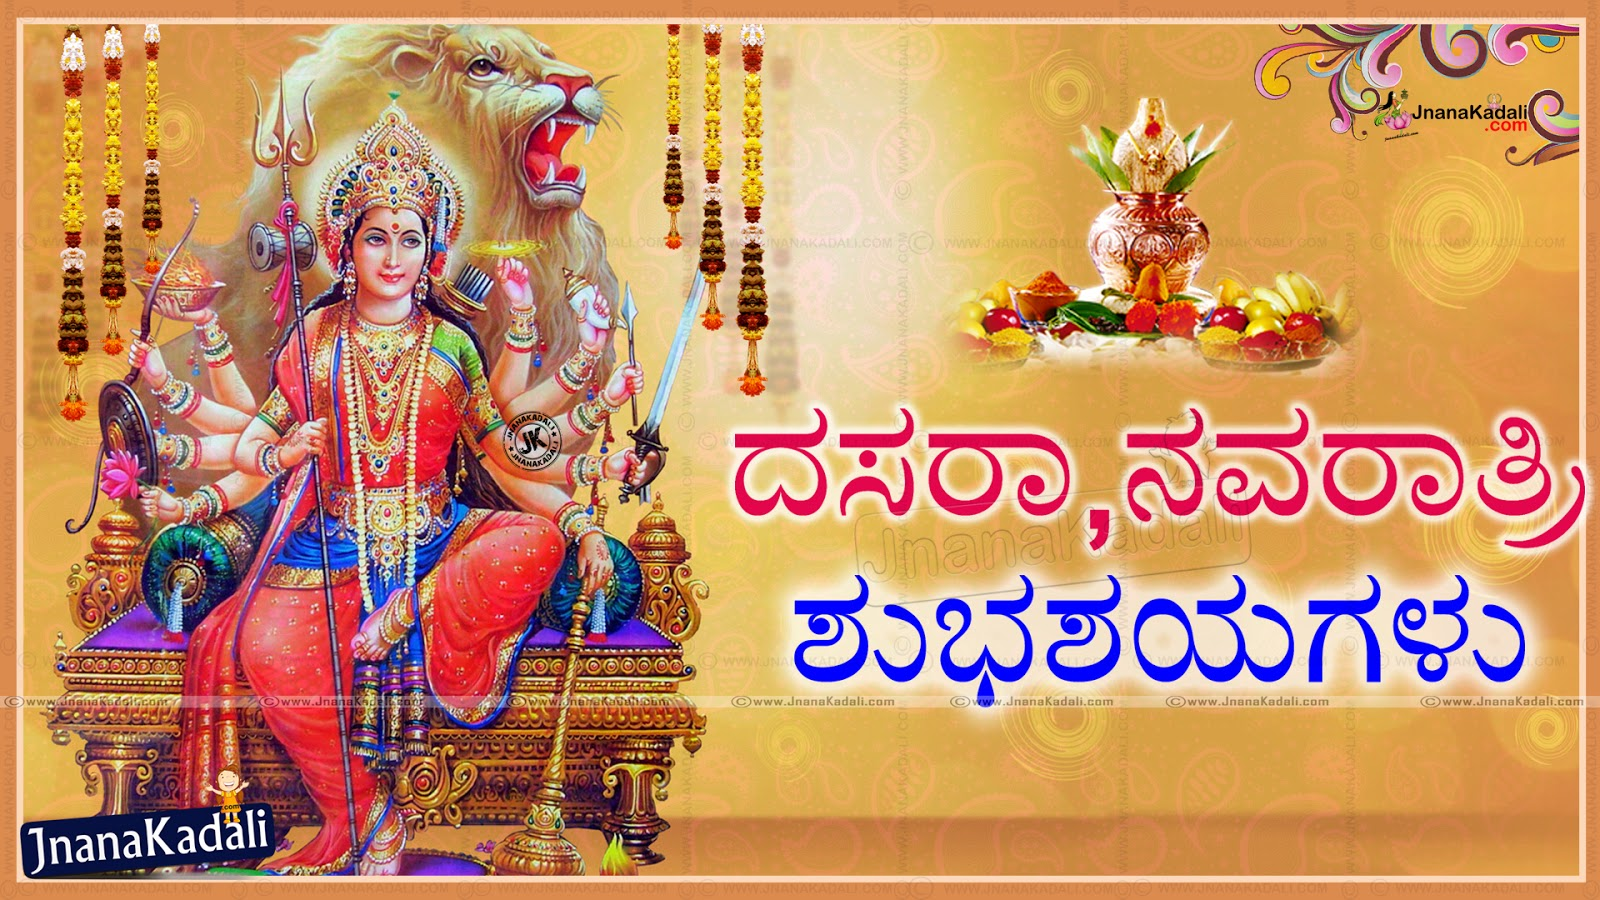 Best vijayadashami greetings wallpapers quotes in kannada jnana twitter facebook url print email wish you happy dasara telugu quotes and nice imageshappy vijaya dashami 2015 quotes greetings wishes images wallpapers kristyandbryce Images